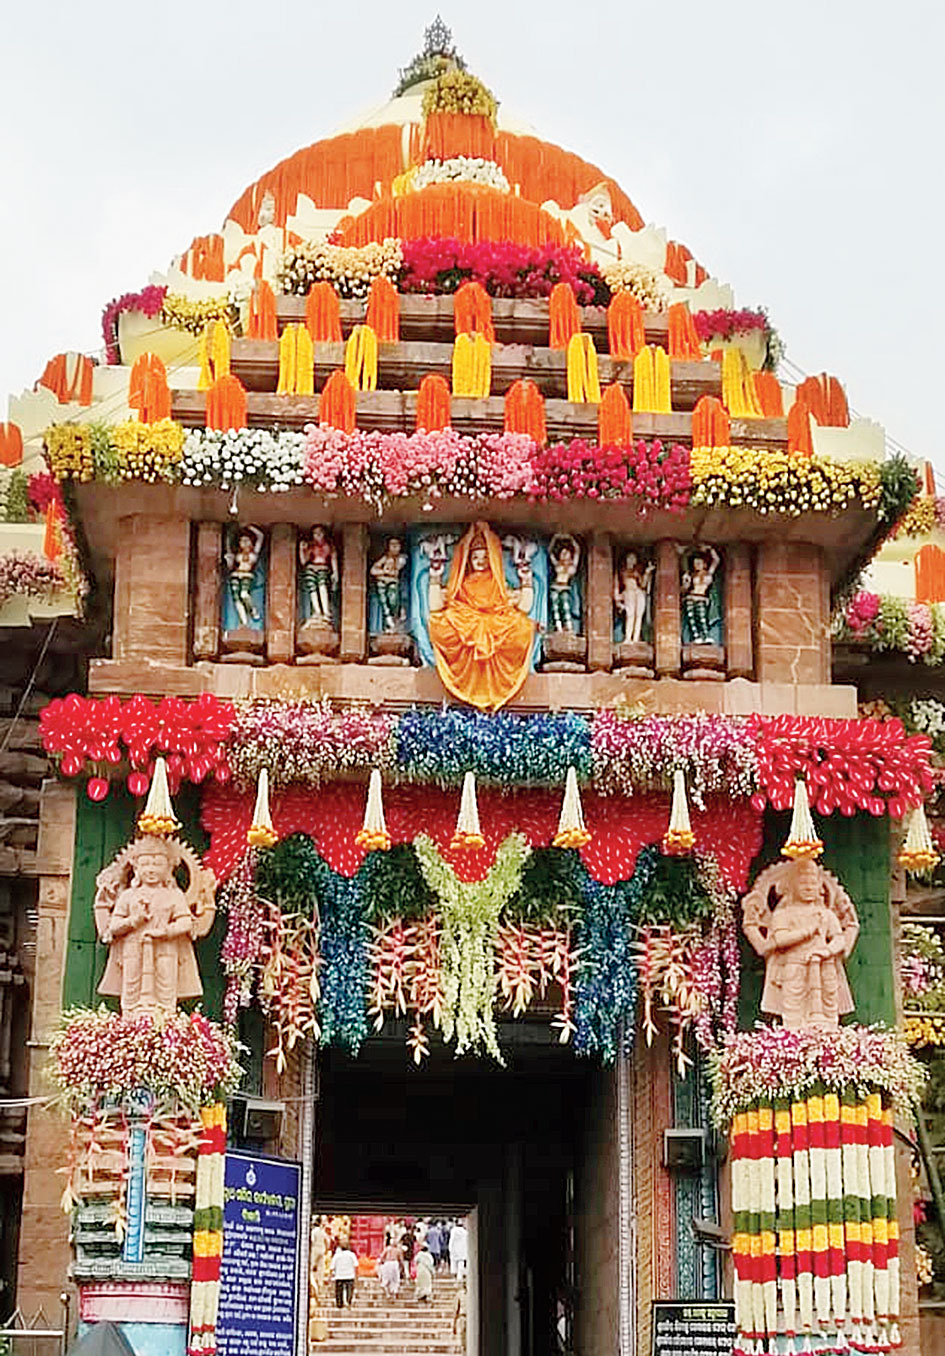 The floral decoration at the Jagannath temple gate